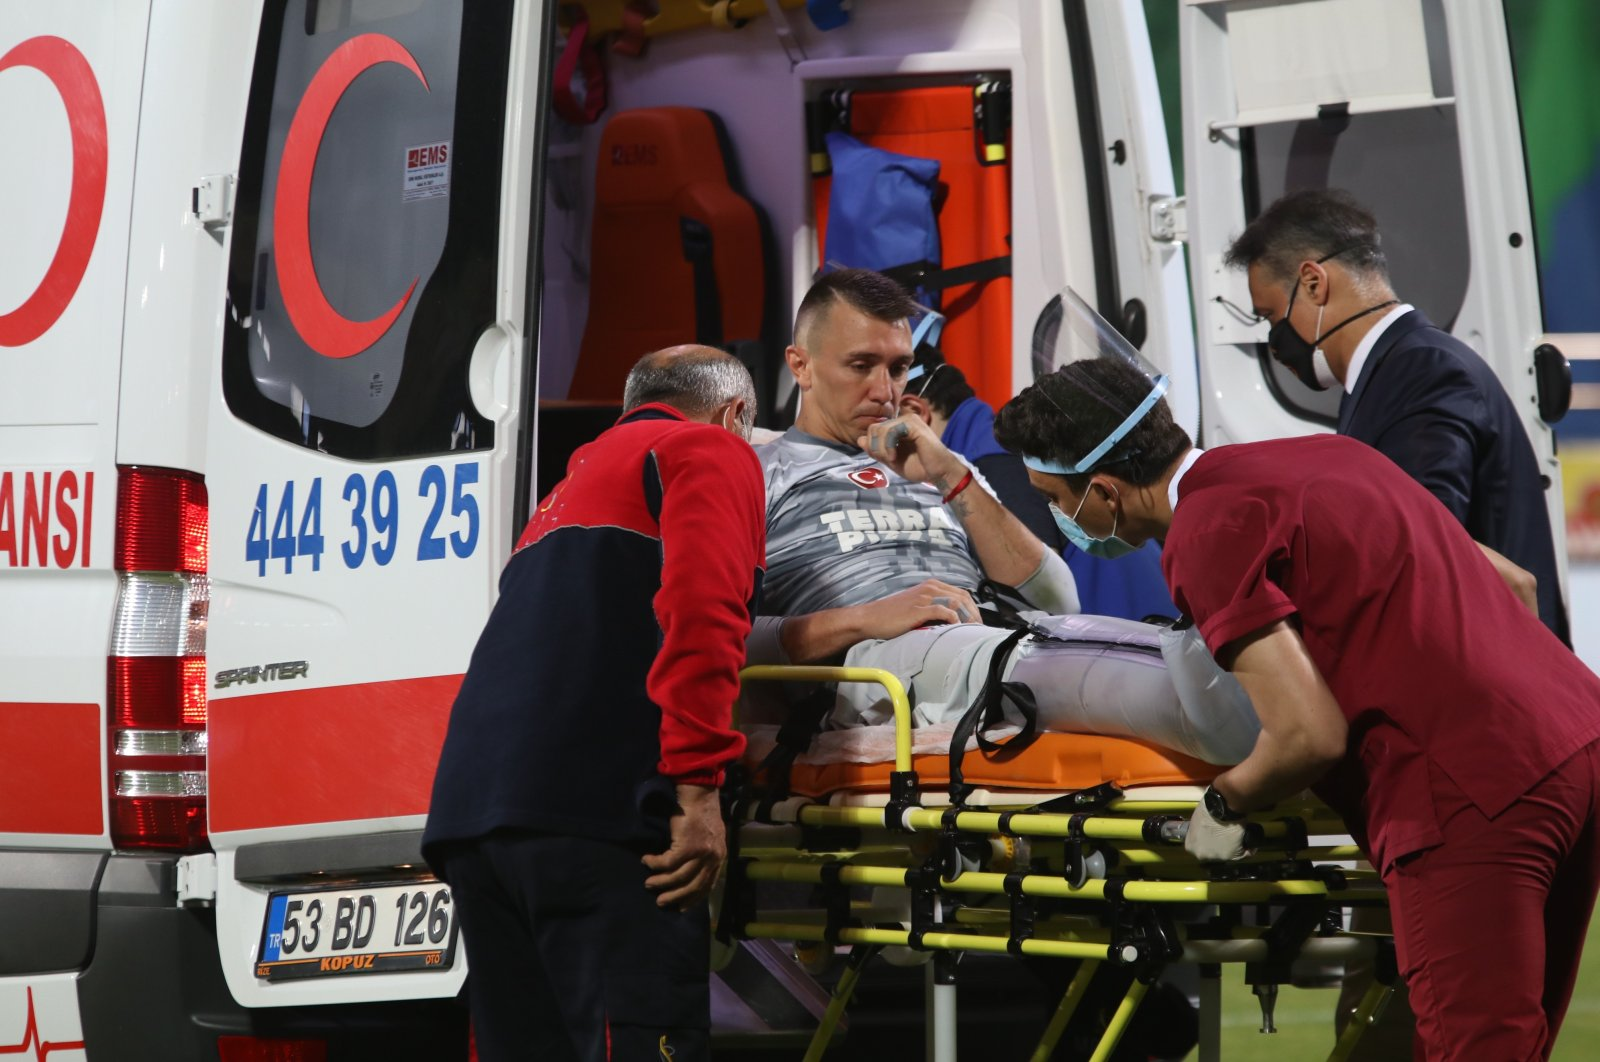 Galatasaray legend Fernando Muslera being taken to the hospital after fracturing his right tibia and fibula, Rize, Turkey, June 14, 2020. (IHA Photo)